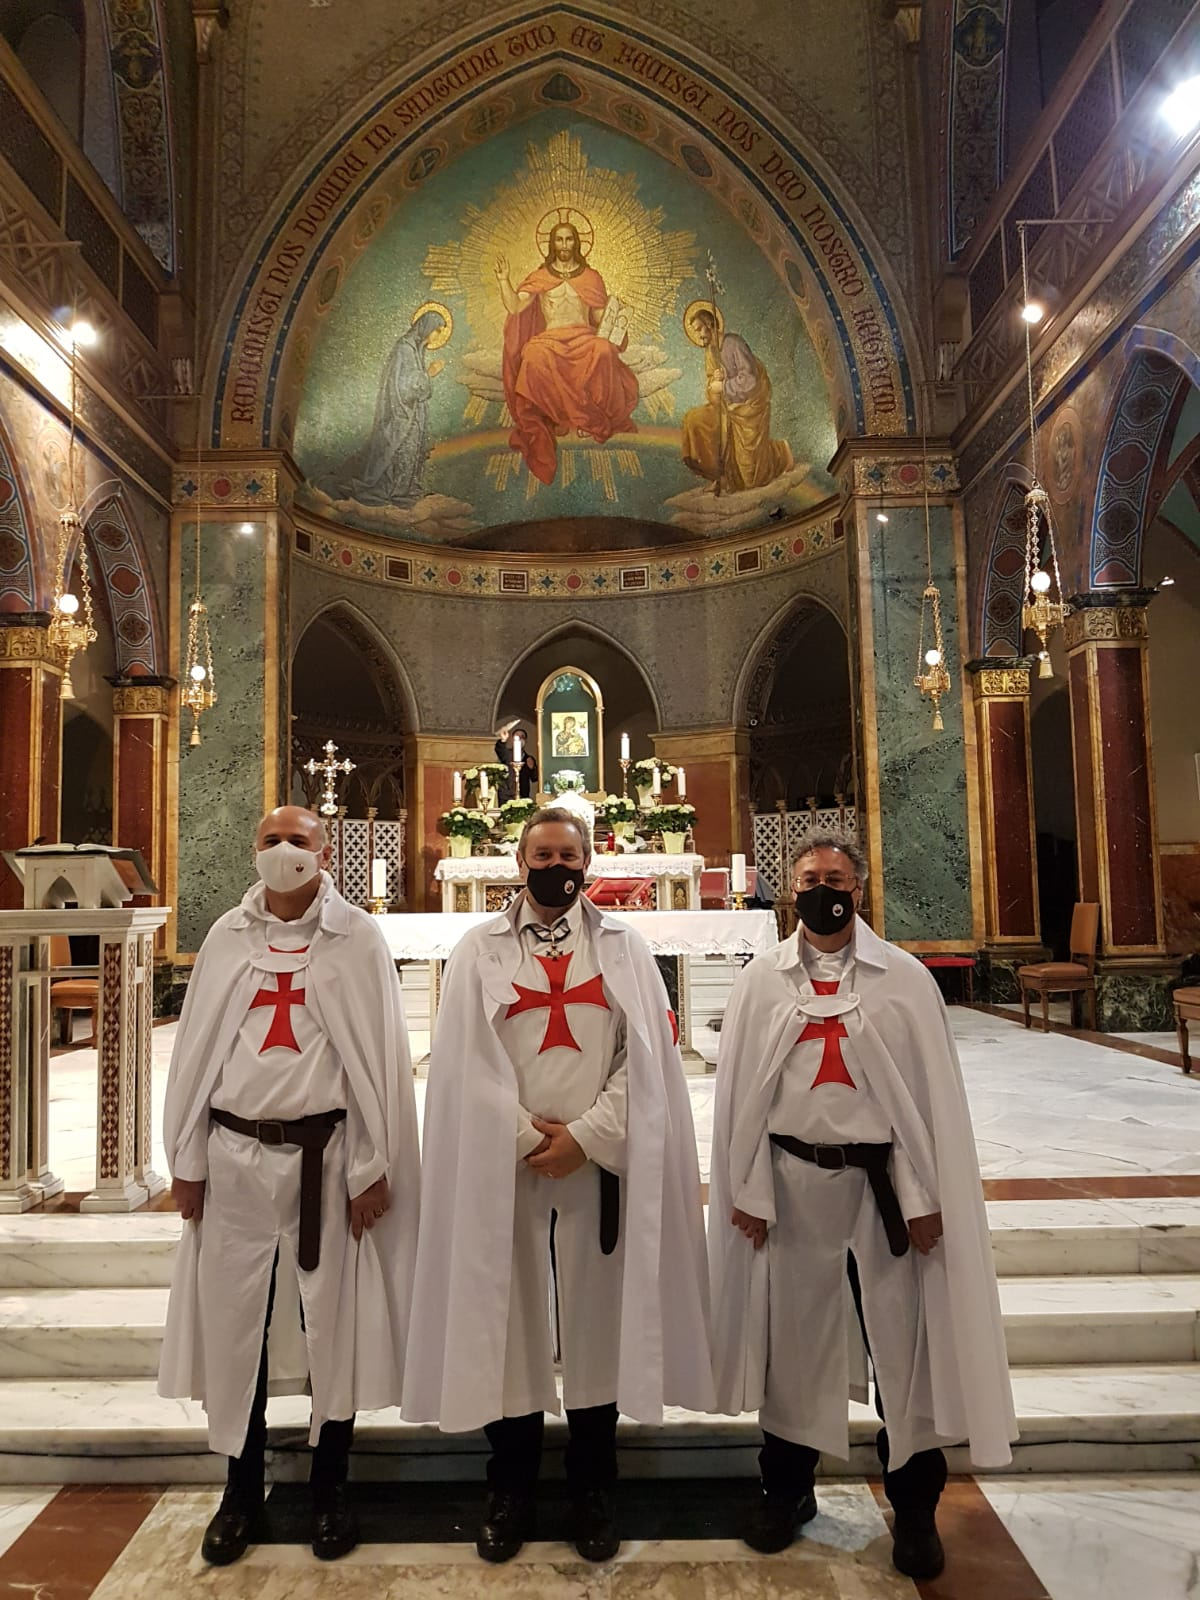 Turno di custodia Chiesa di Sant'Alfonso all'Esquilino – Roma 01.05.2021